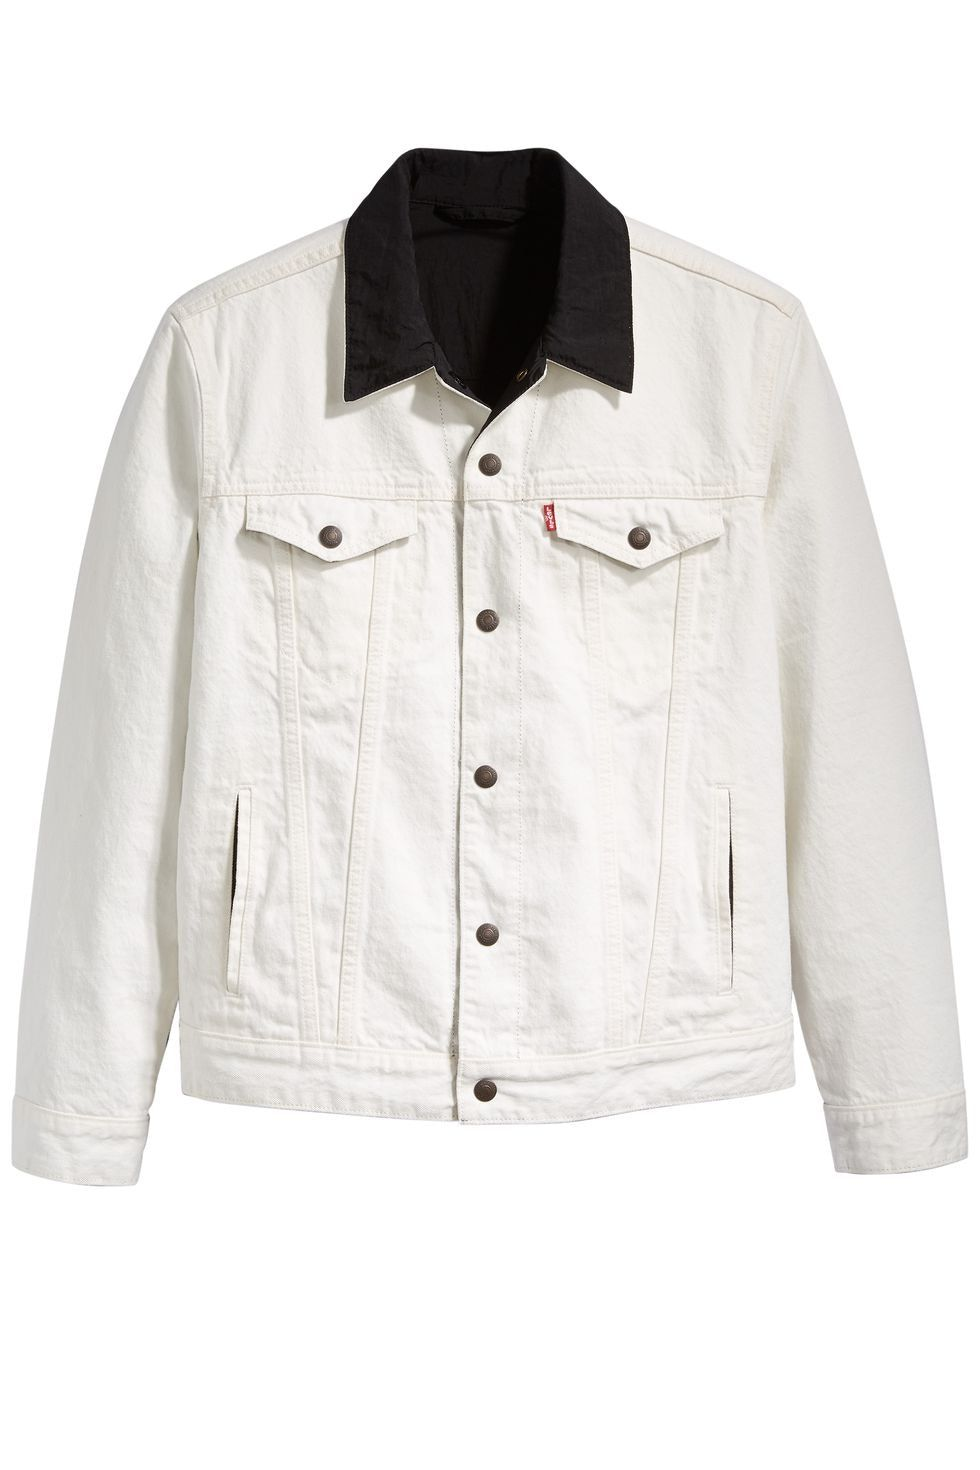 0b63e699d0c Check out the Air Jordan x Levis Reversible Trucker Jacket White/Black  available on StockX